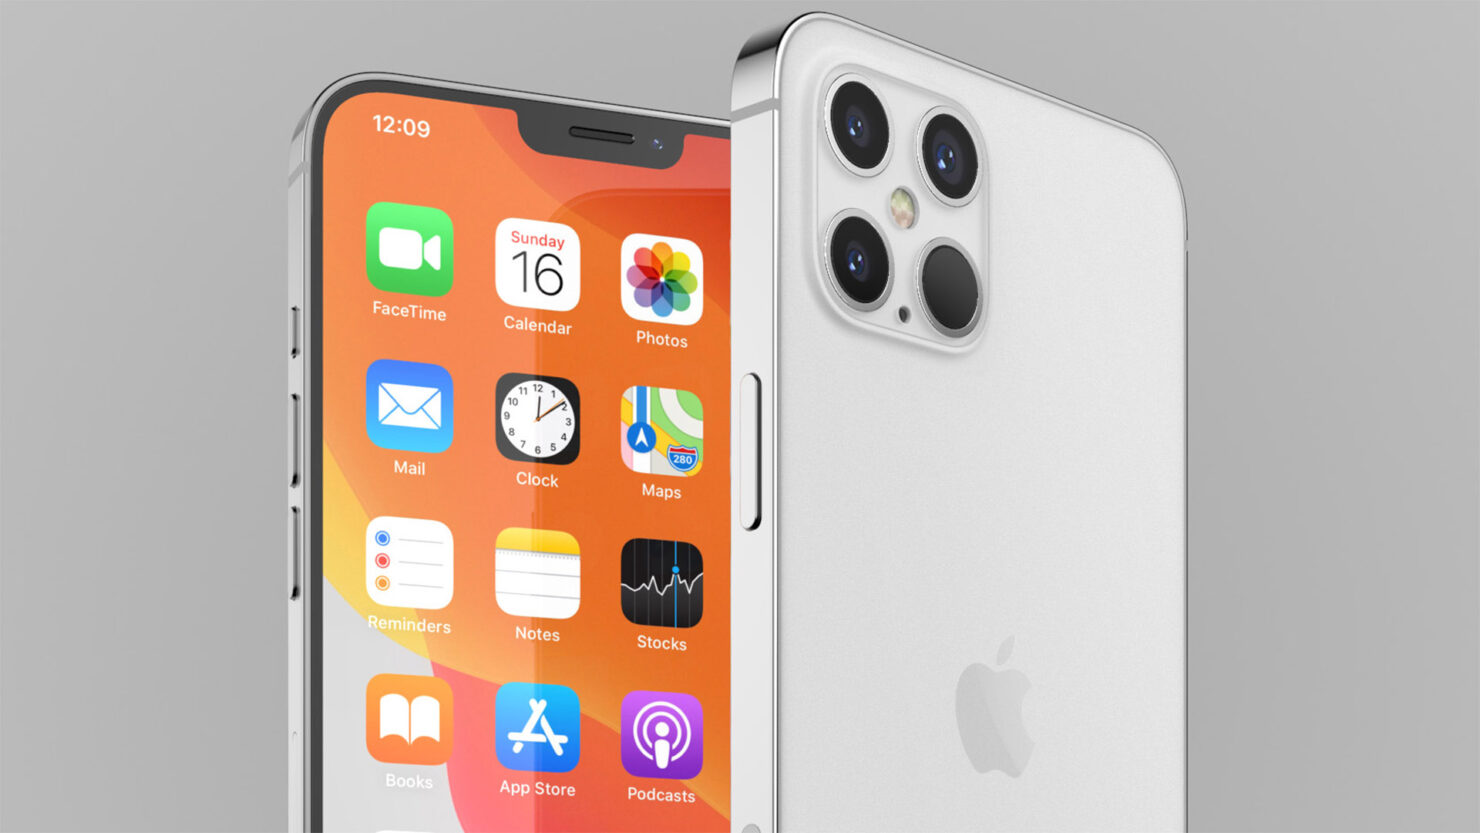 iPhone 12 Lineup to Use Snapdragon X60 5G Modems, Not Snapdragon X55